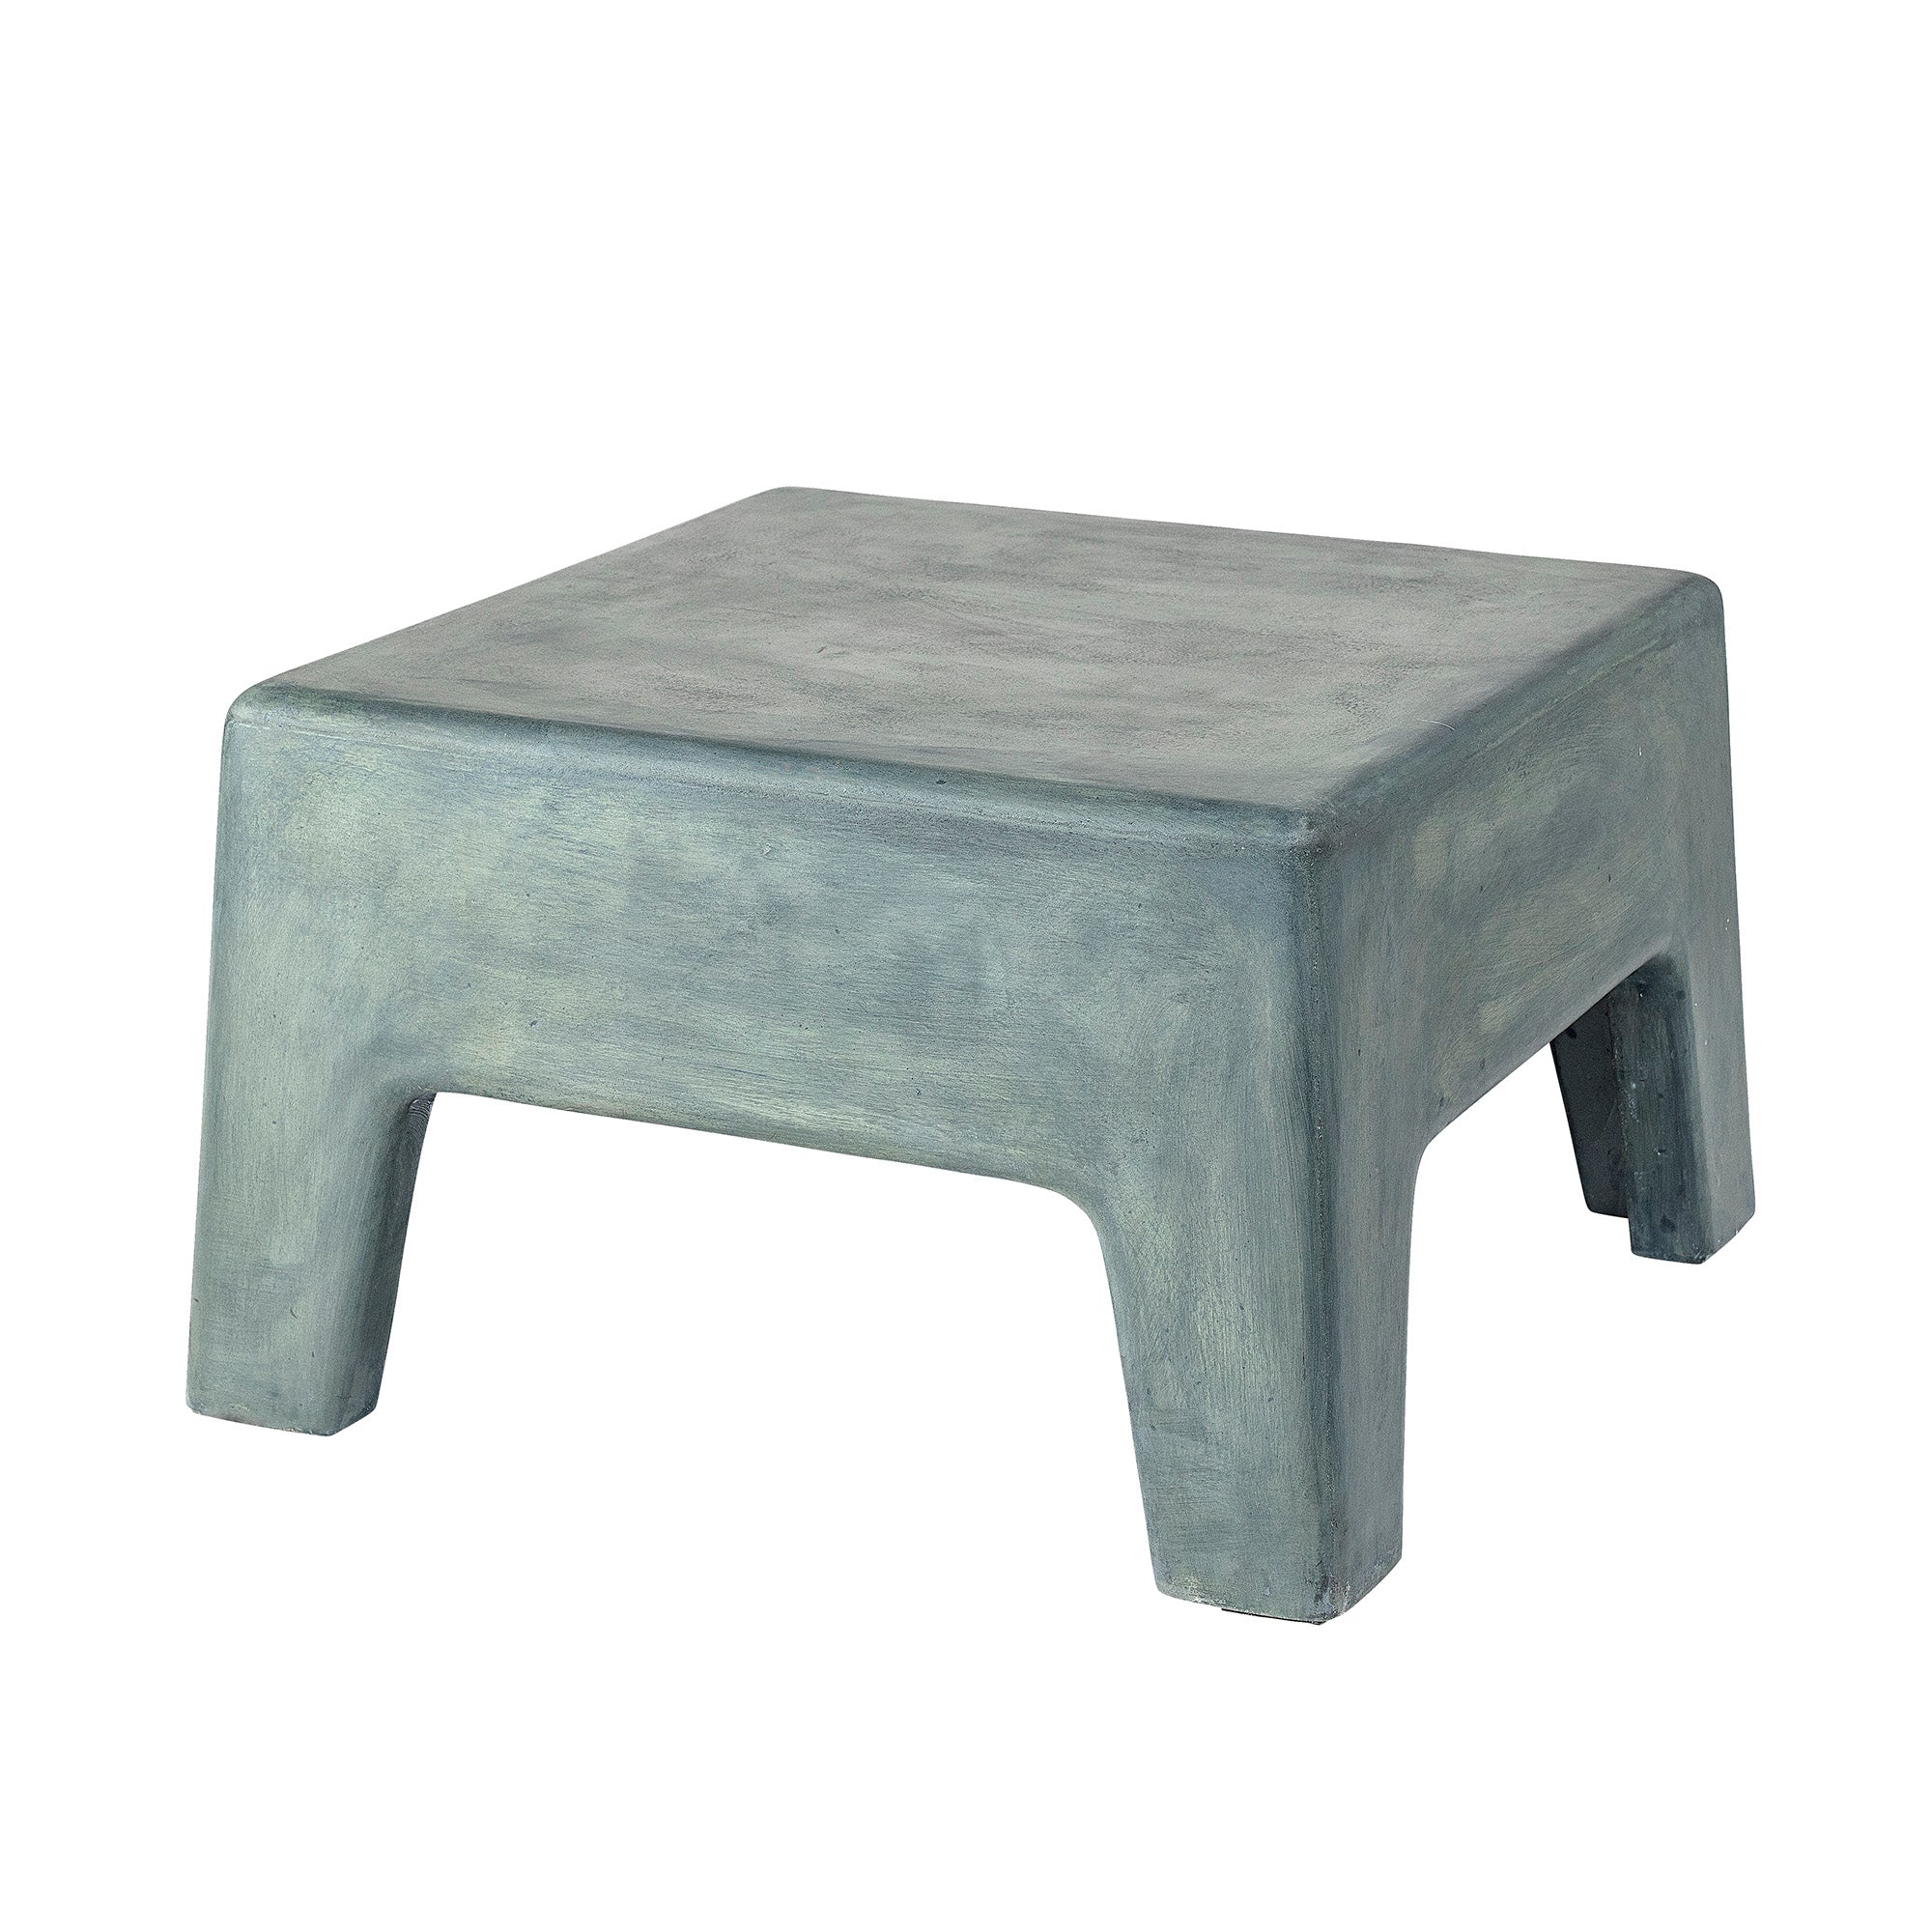 Concrete Table/Stool